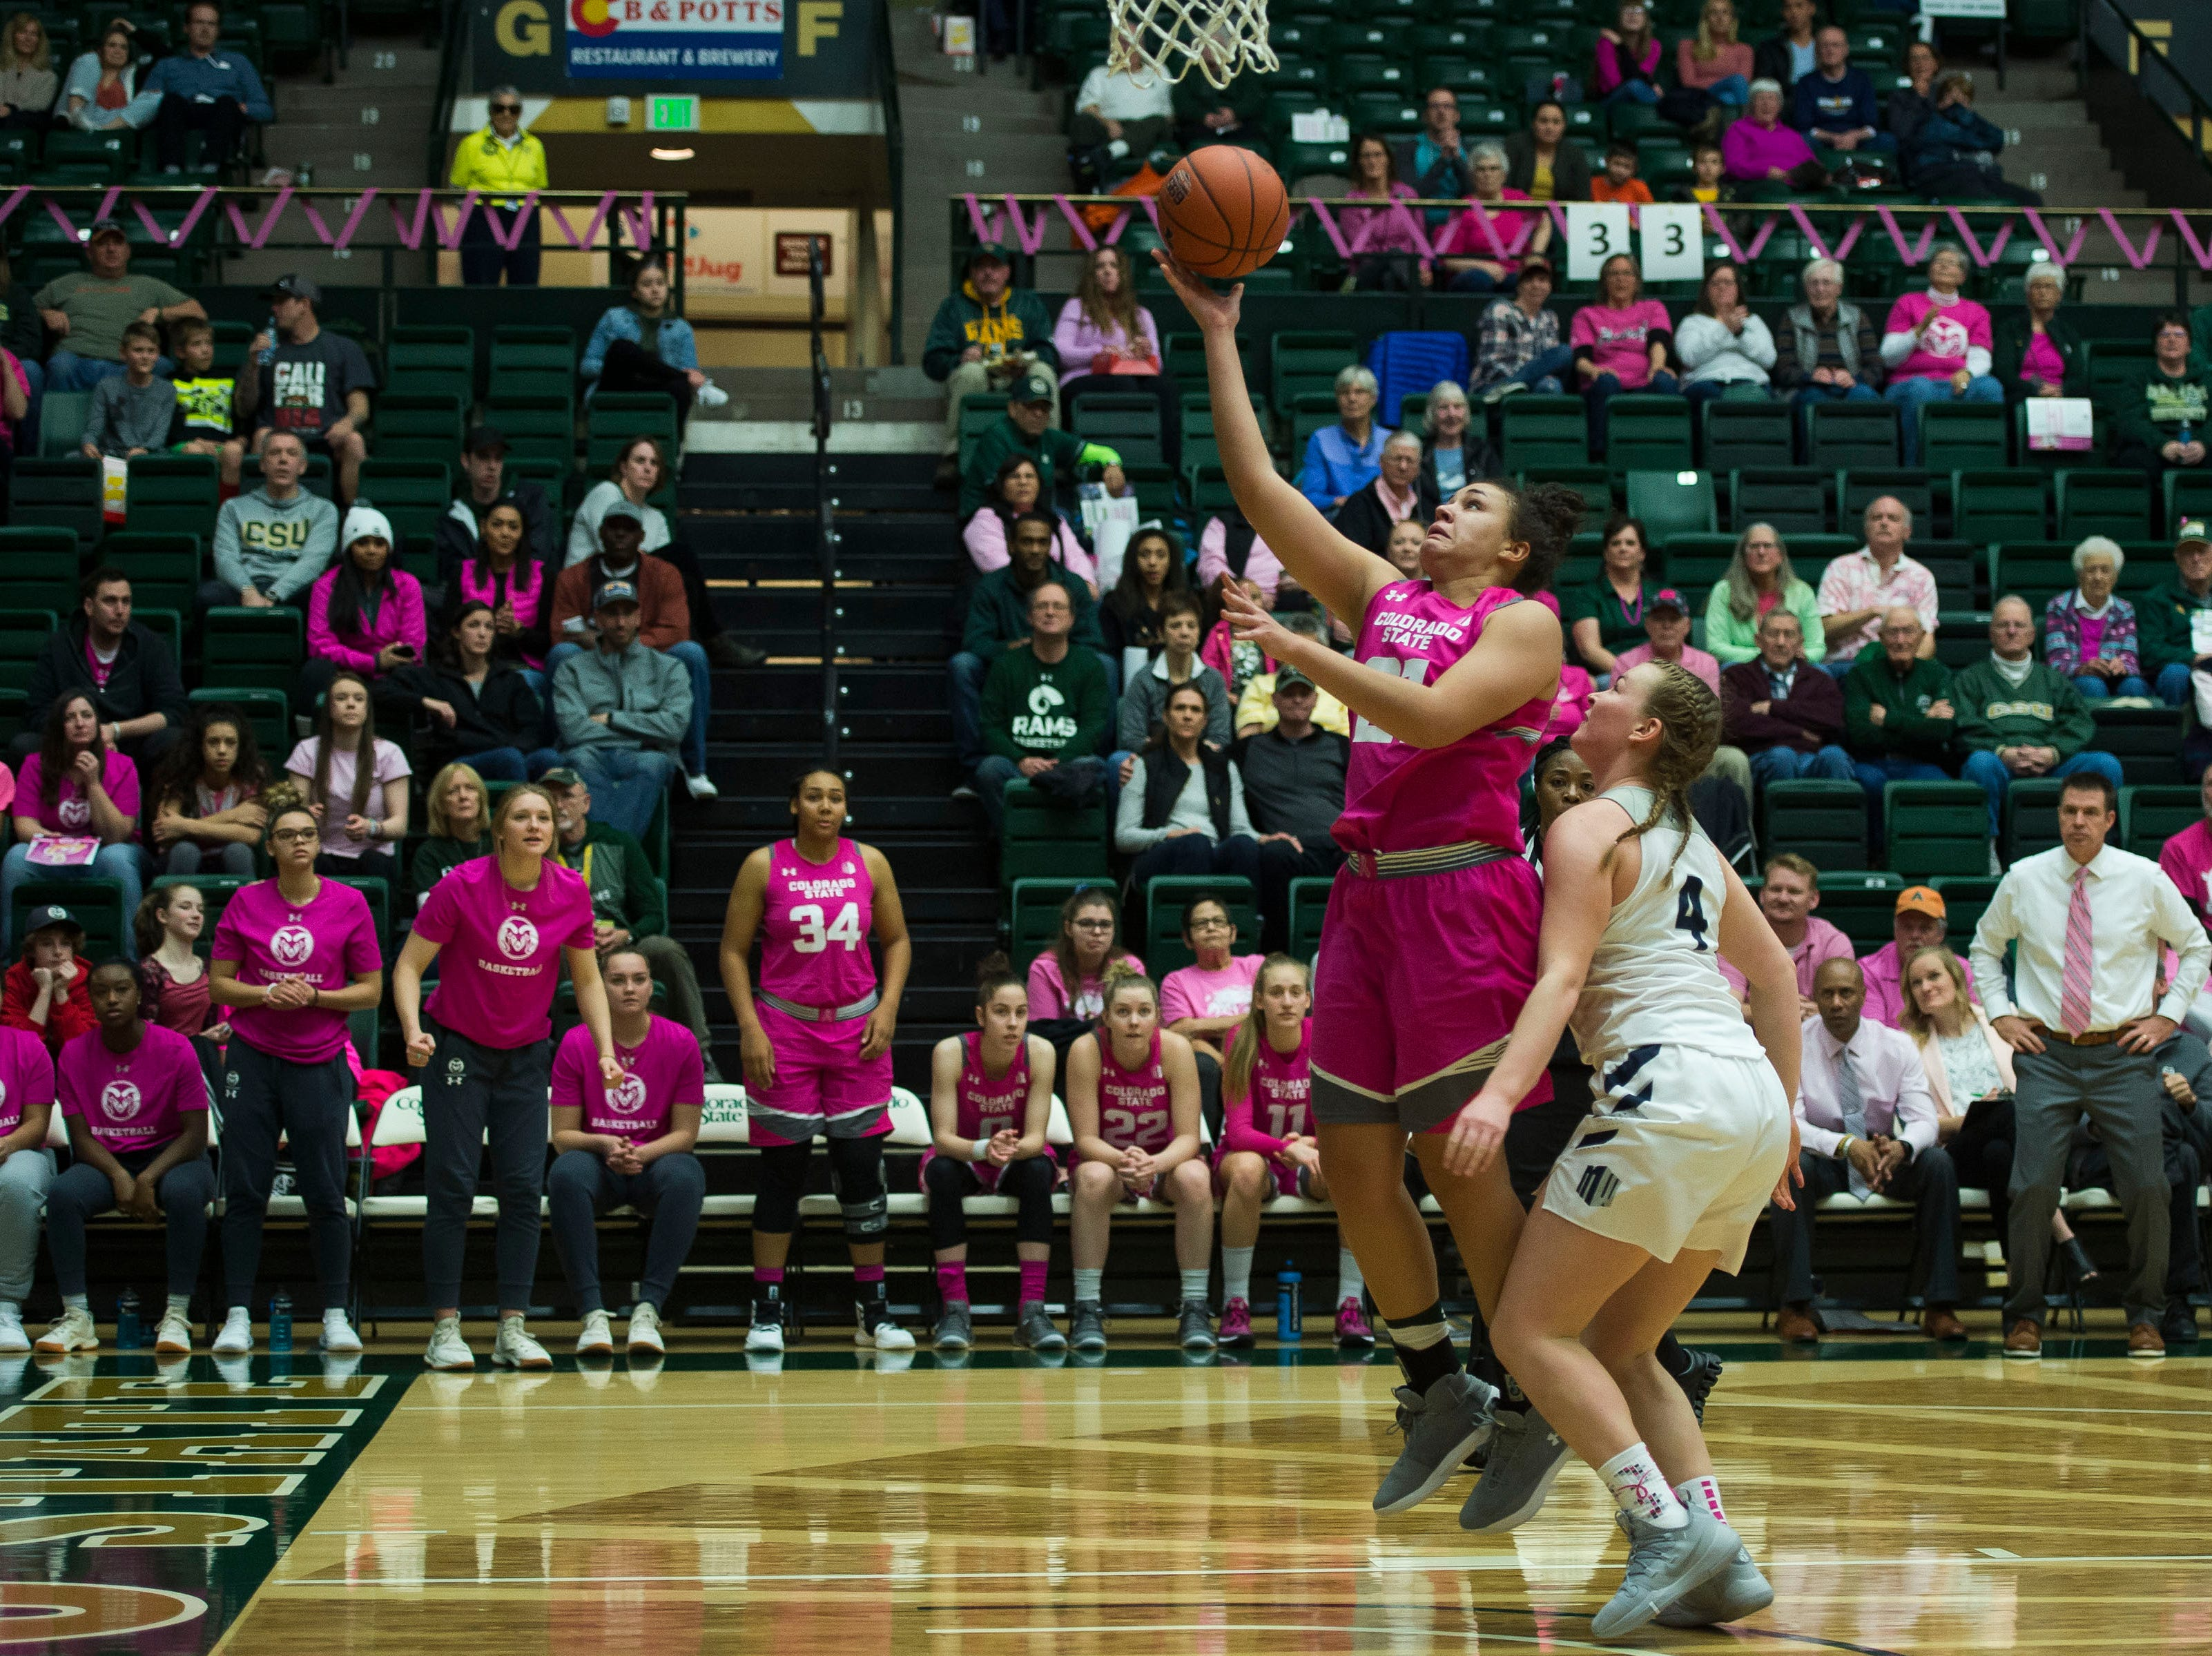 Colorado State University senior guard Myanne Hamm (21) goes for a layup after stealing the ball from Utah State freshman guard Steph Gorman (4) on Saturday, Jan. 19, 2019, at Moby Arena in Fort Collins, Colo.